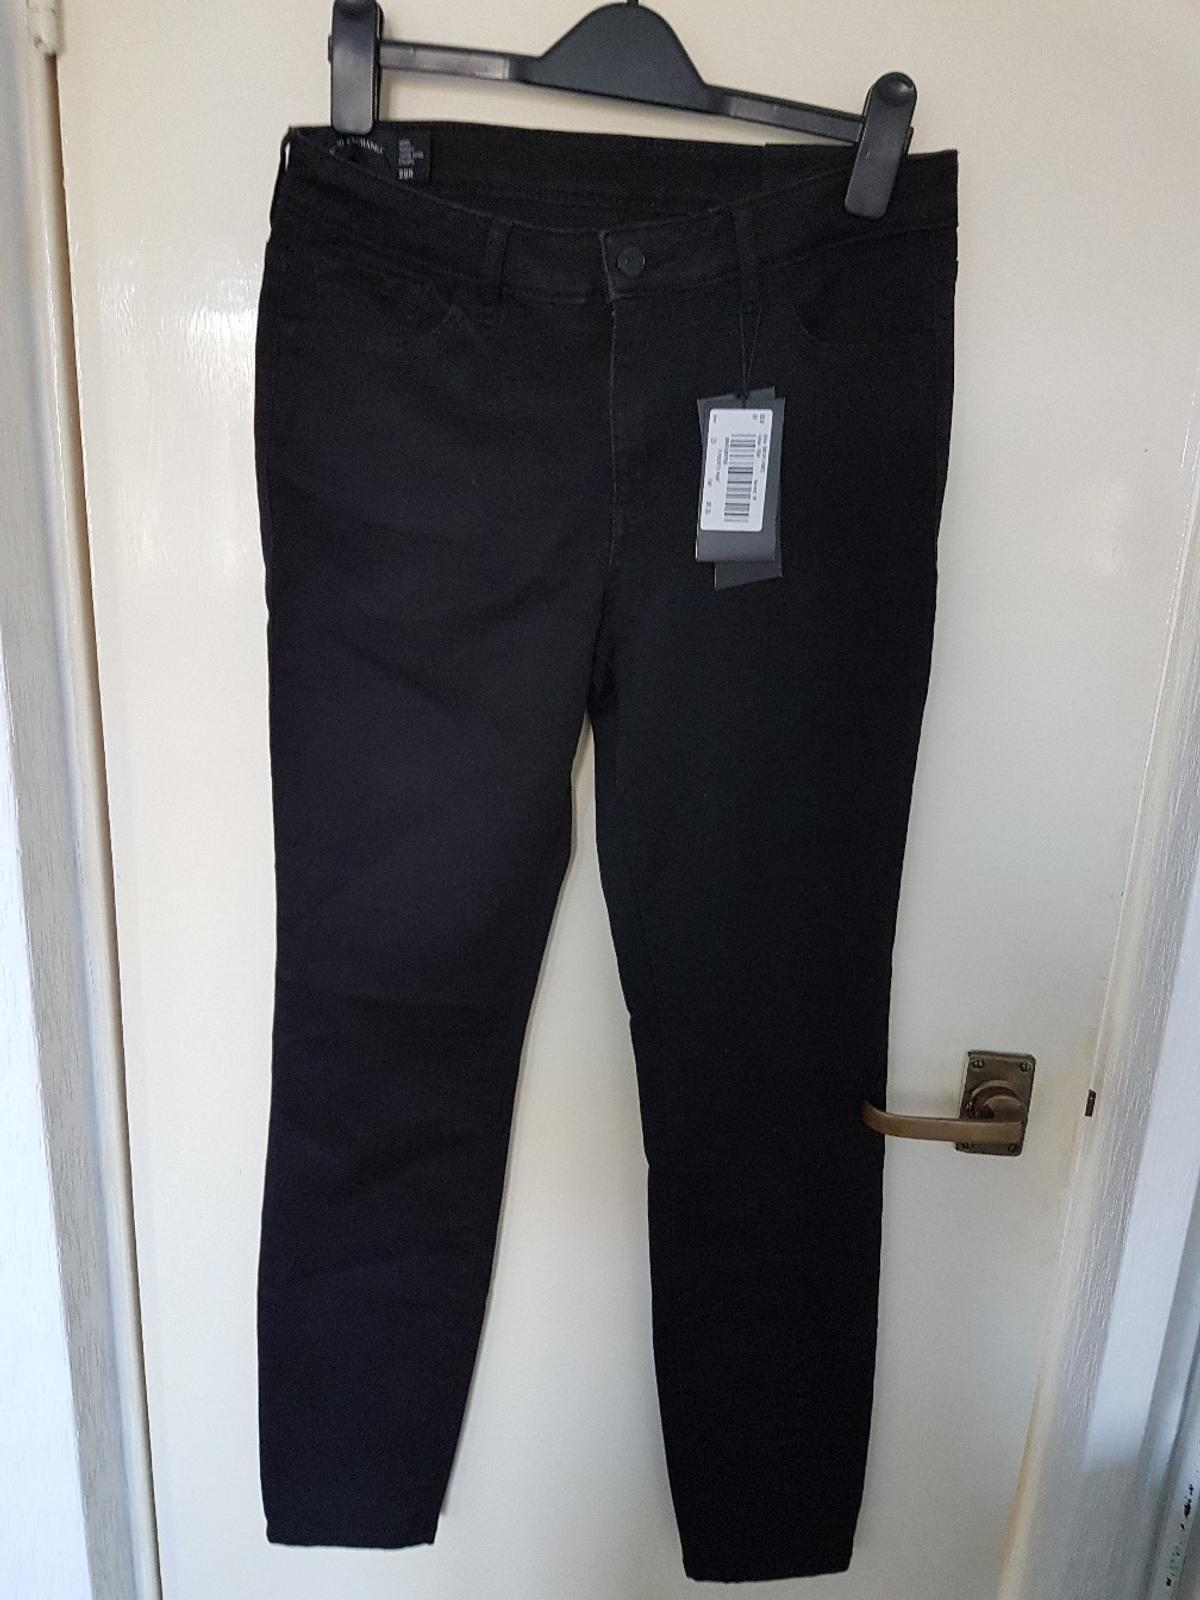 Size 29R